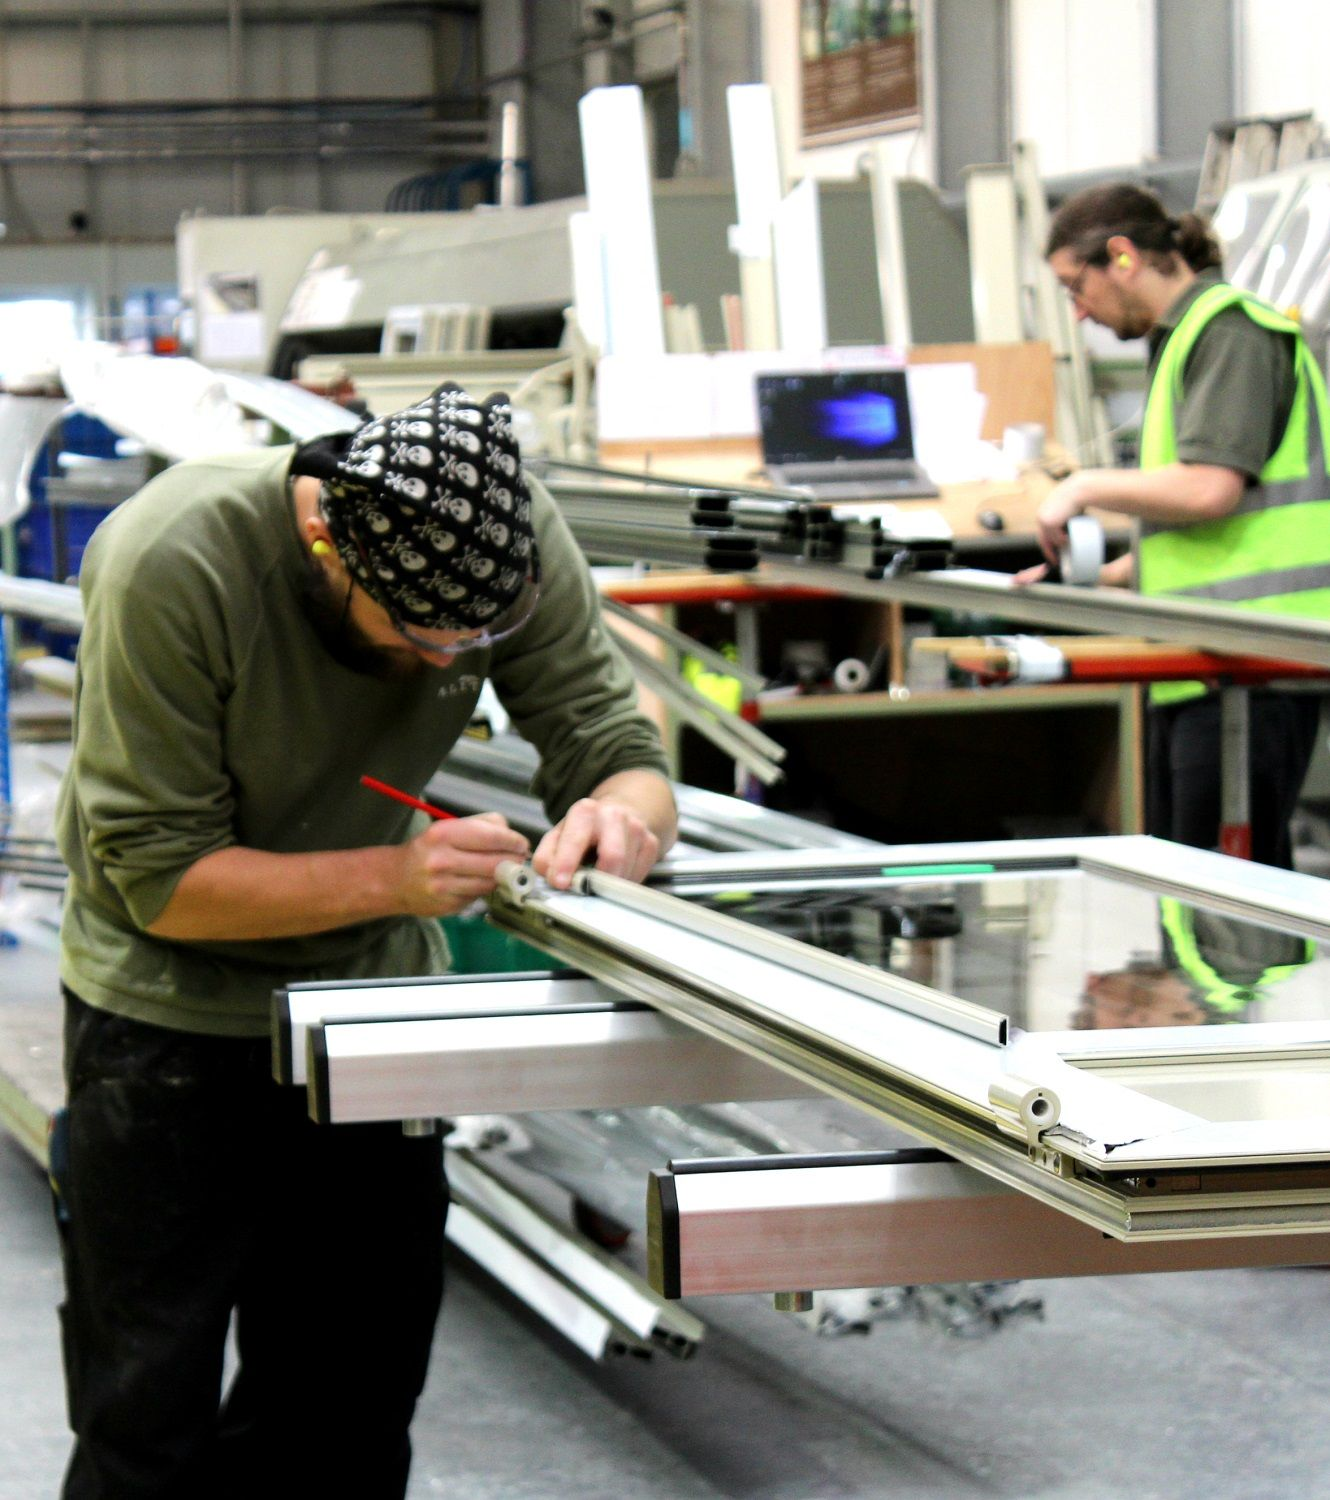 British manufacturing workers